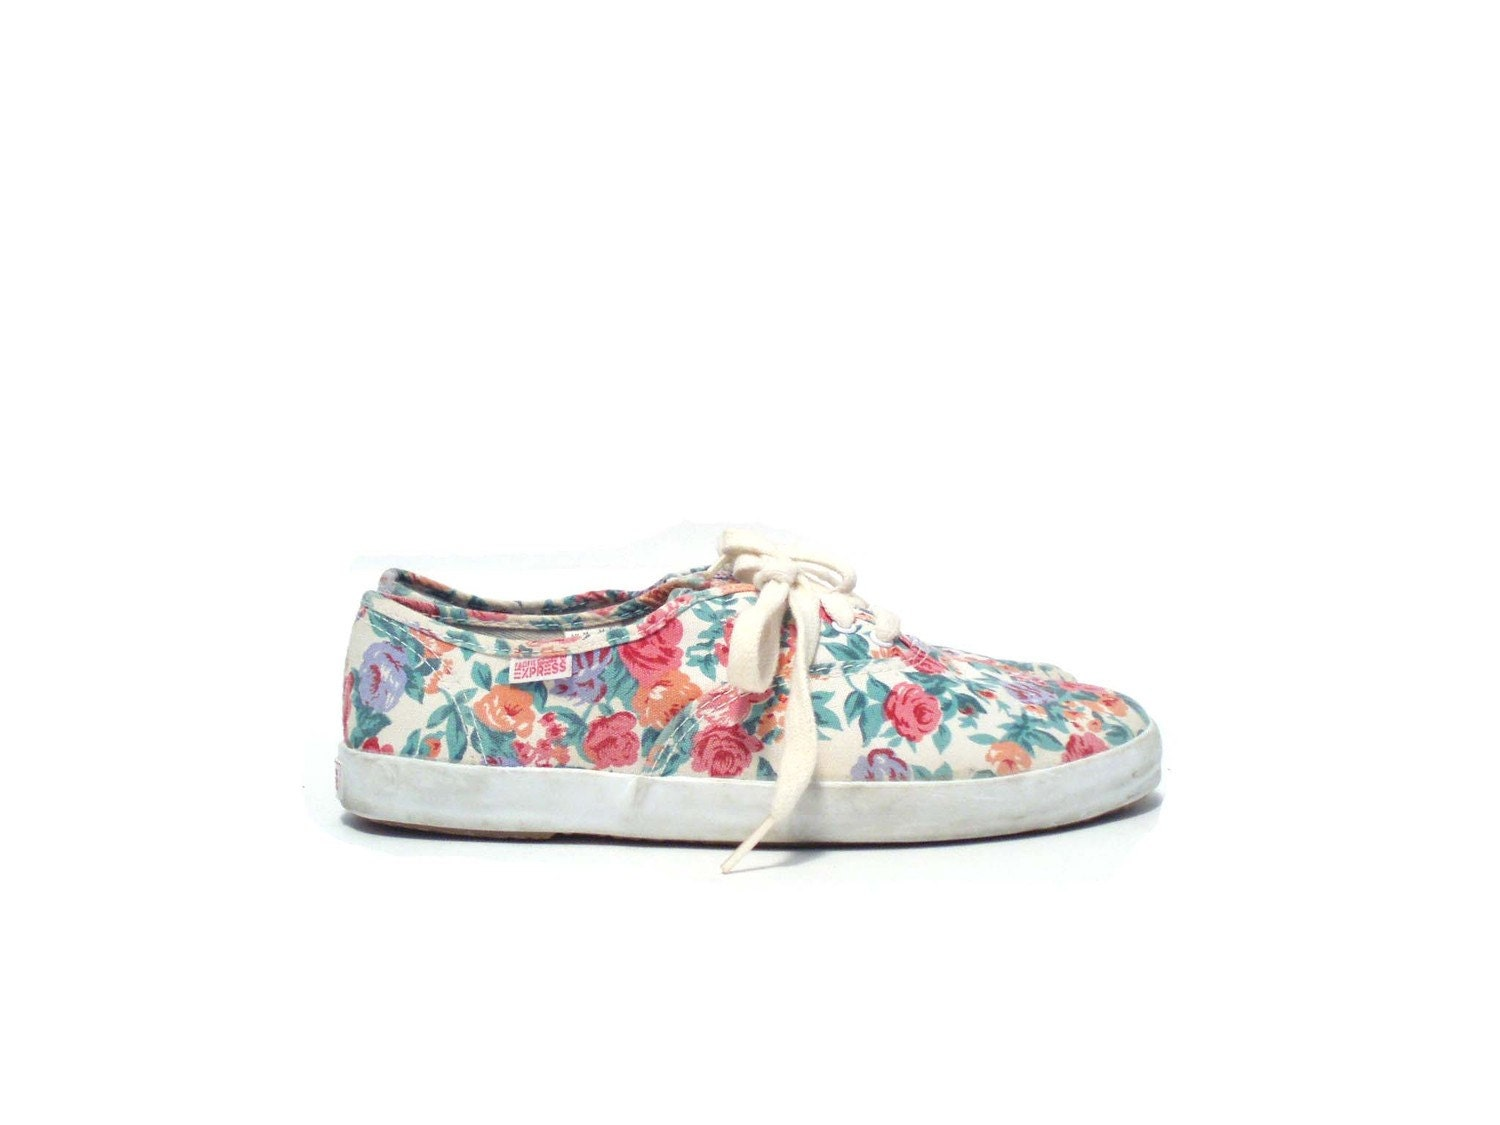 Size 8 5 Floral Print Tennis Shoes Sneakers By